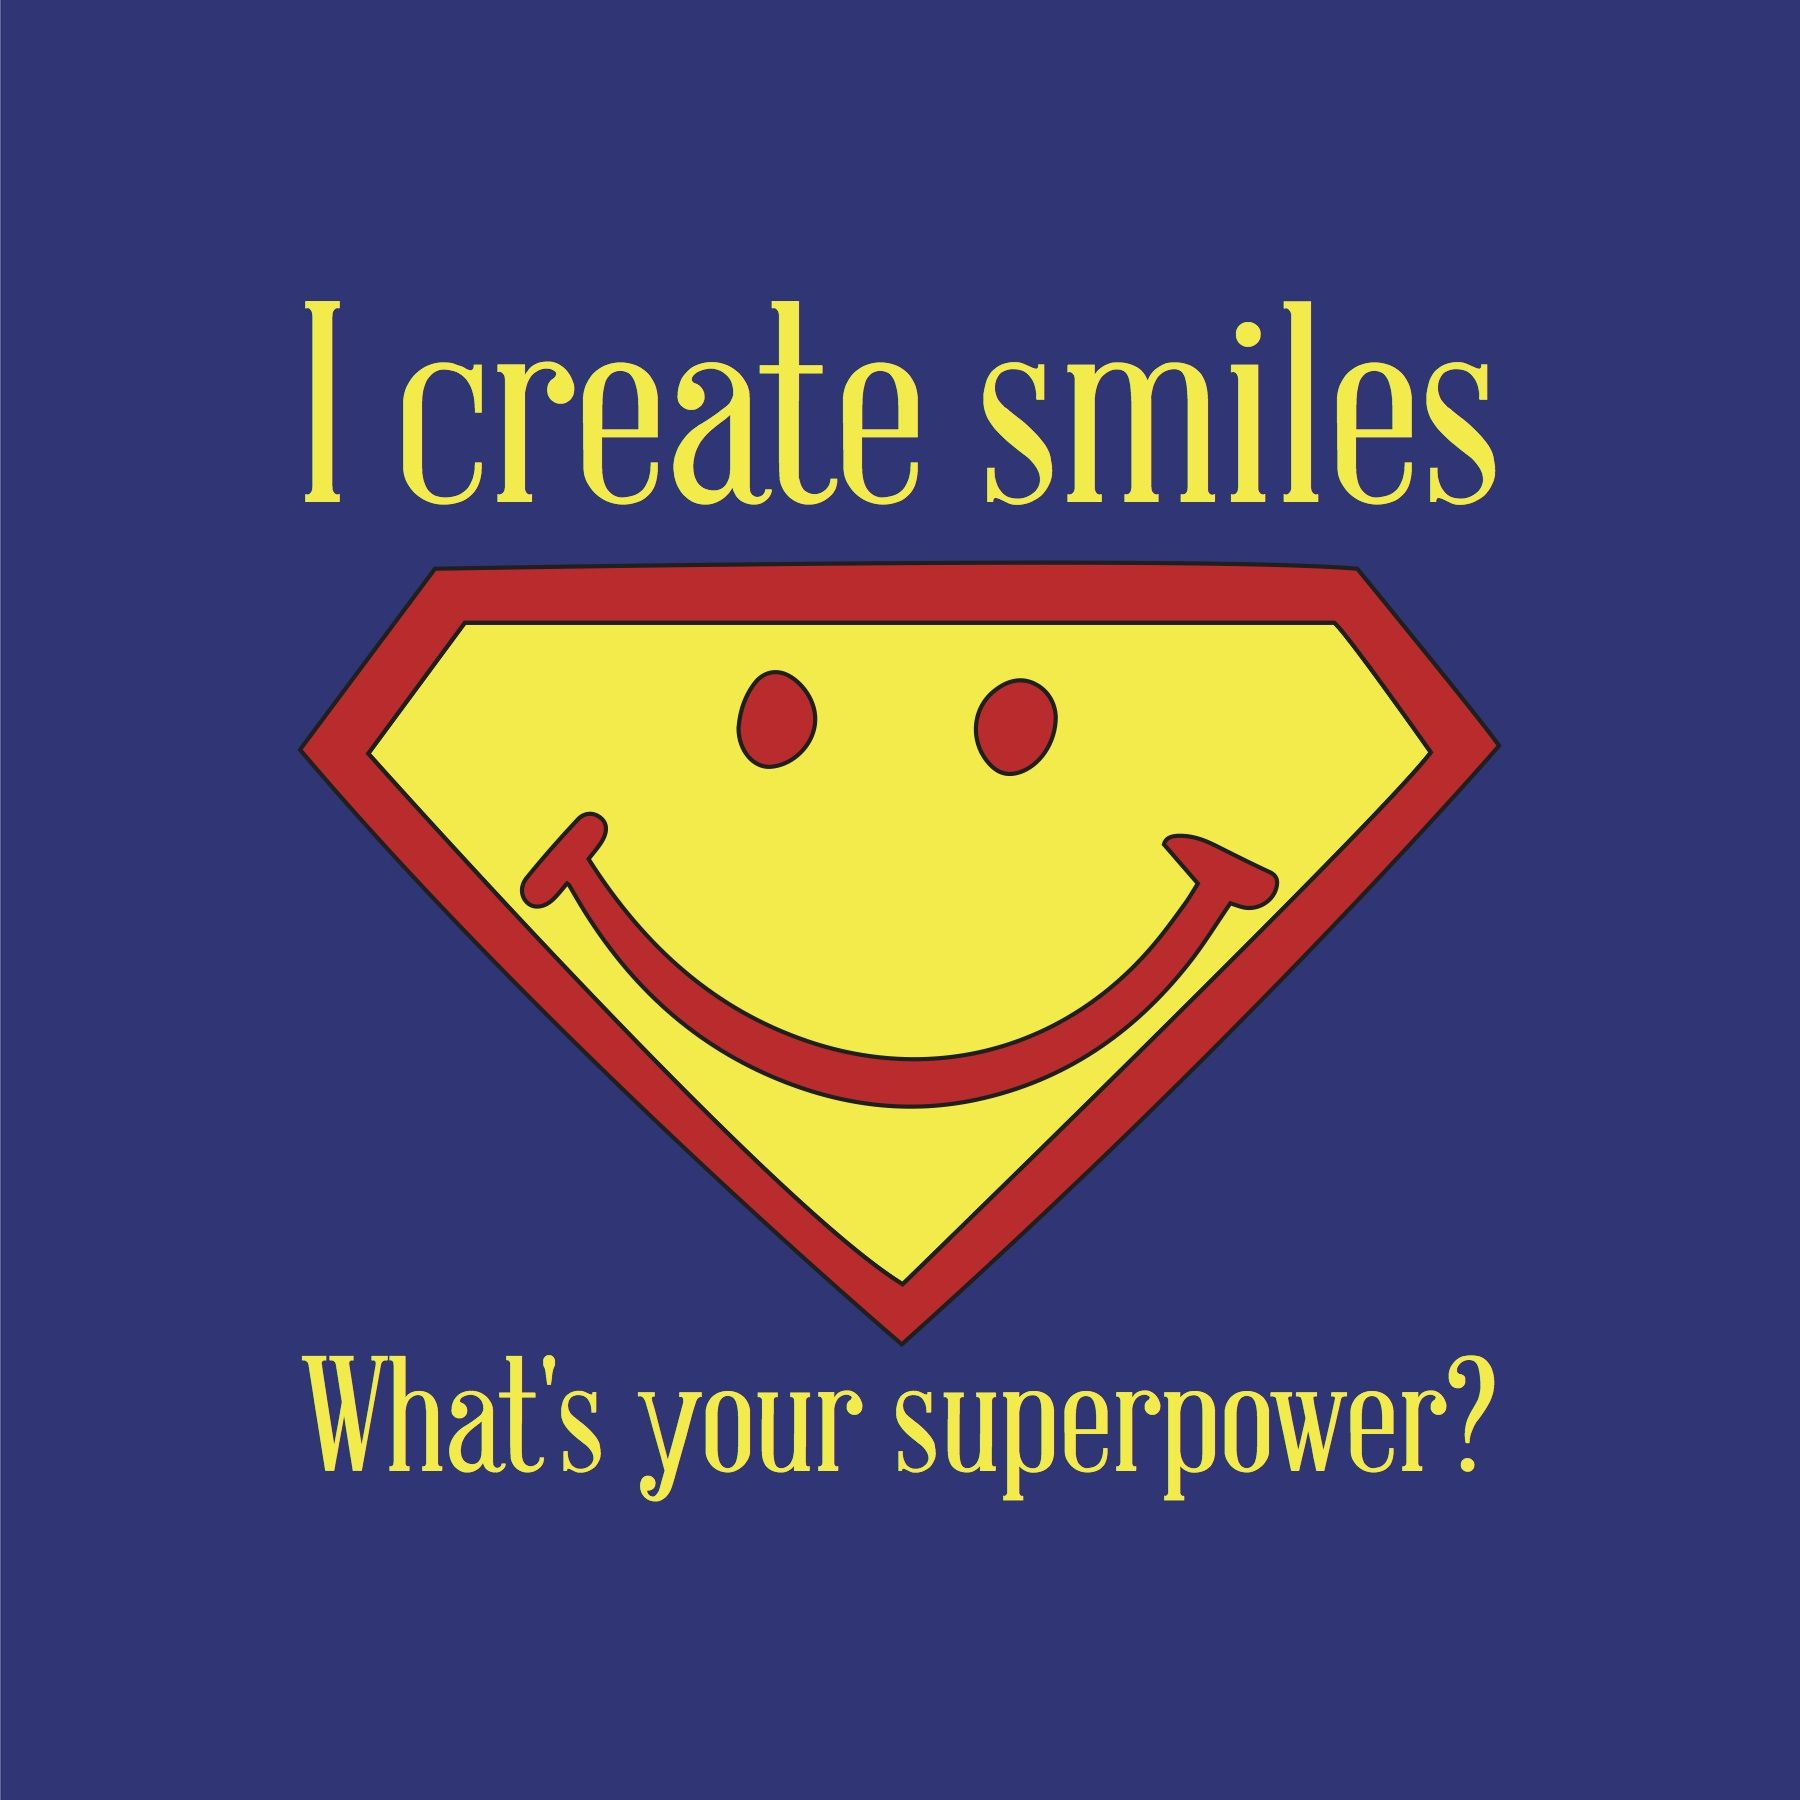 I create smiles. What's your superpower? Orthodontic